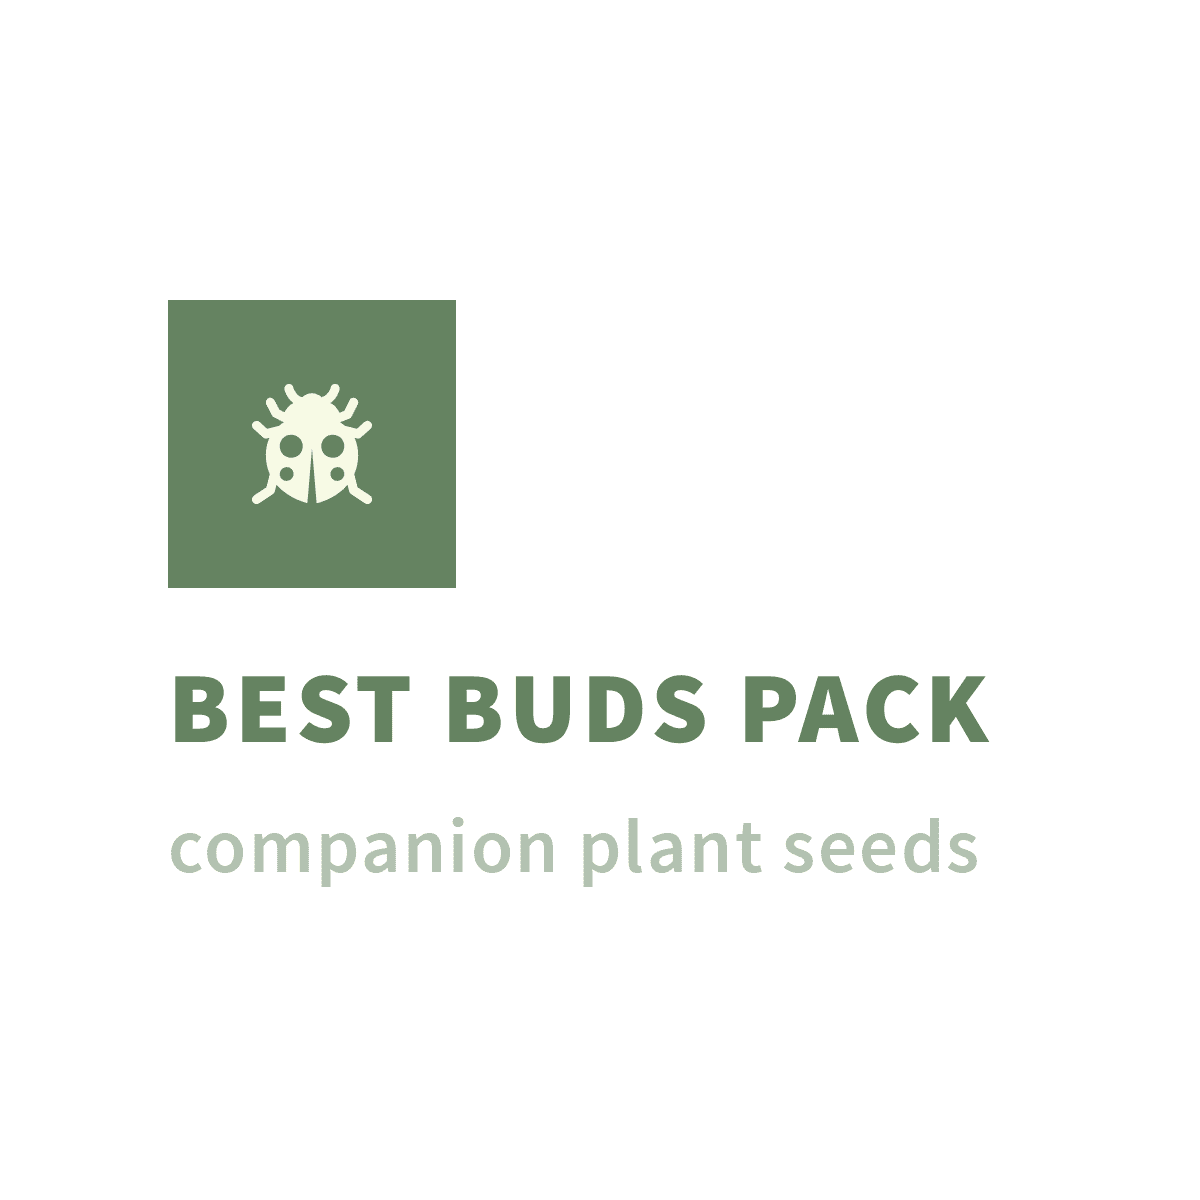 Stealth Pack - BEST BUDS PACK companion plant seeds MIX PACK